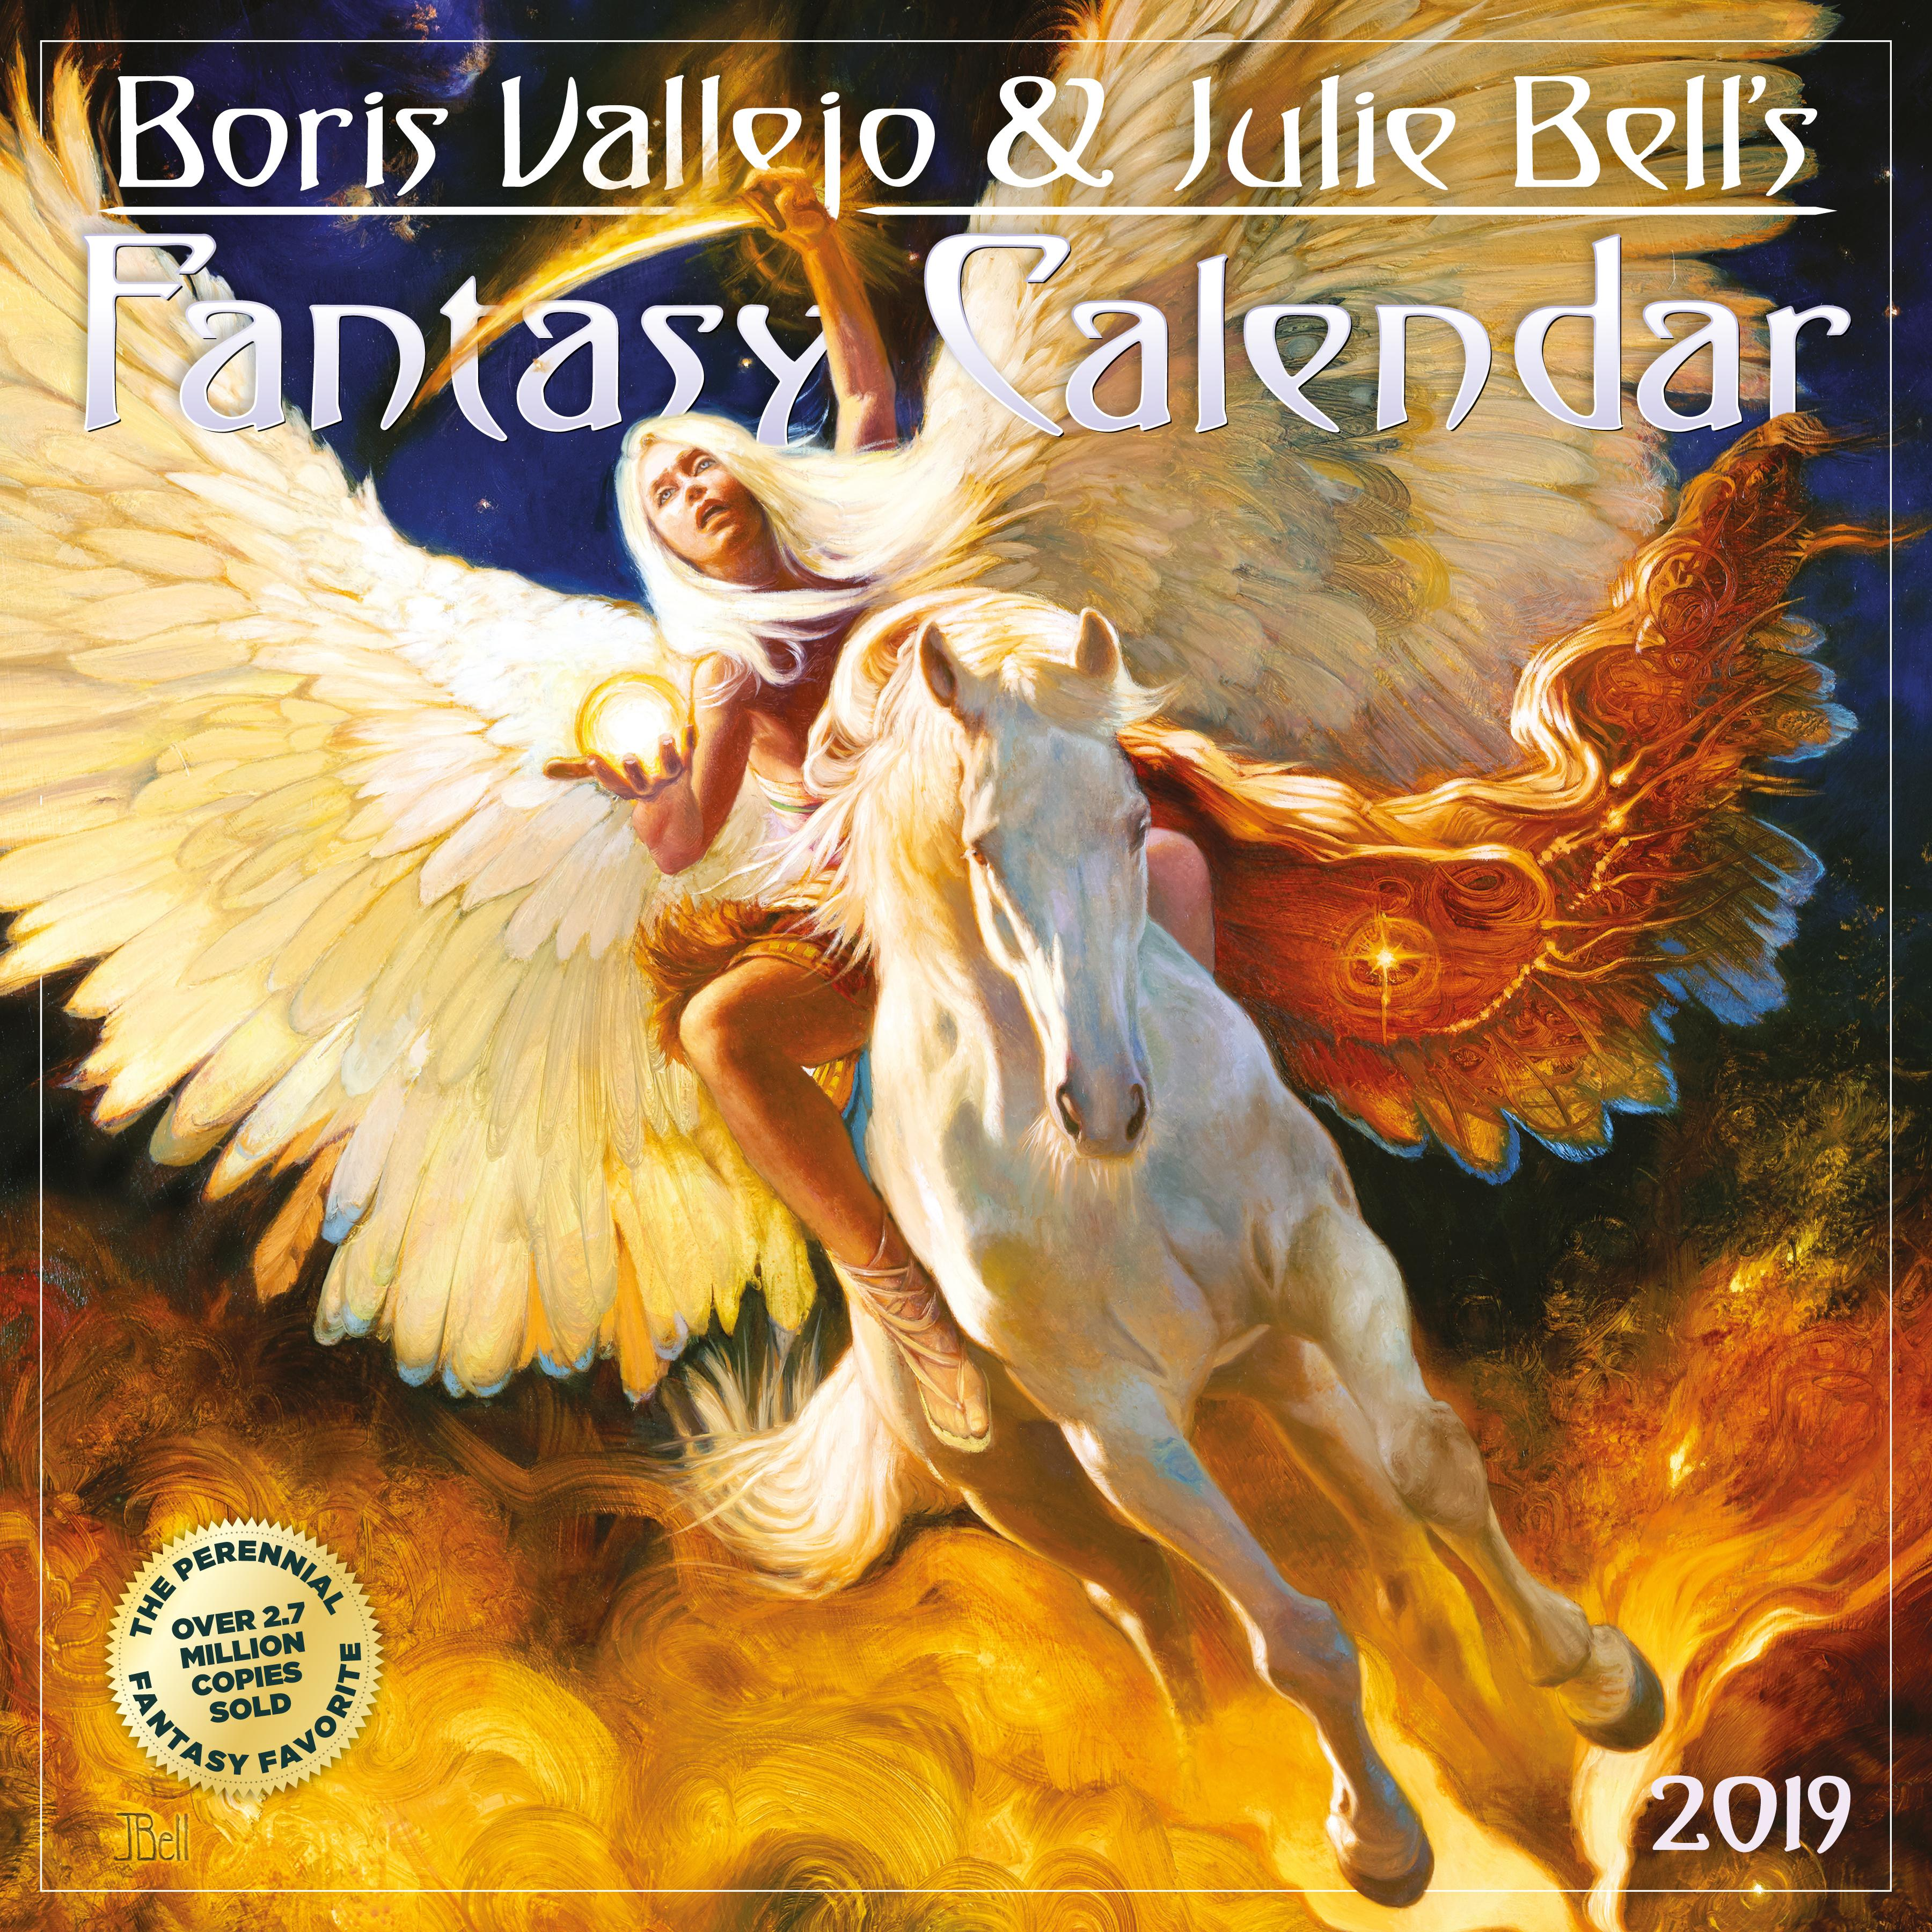 Boris Vallejo & Julie Bell's Fantasy Wall Calendar 2019 (Other)